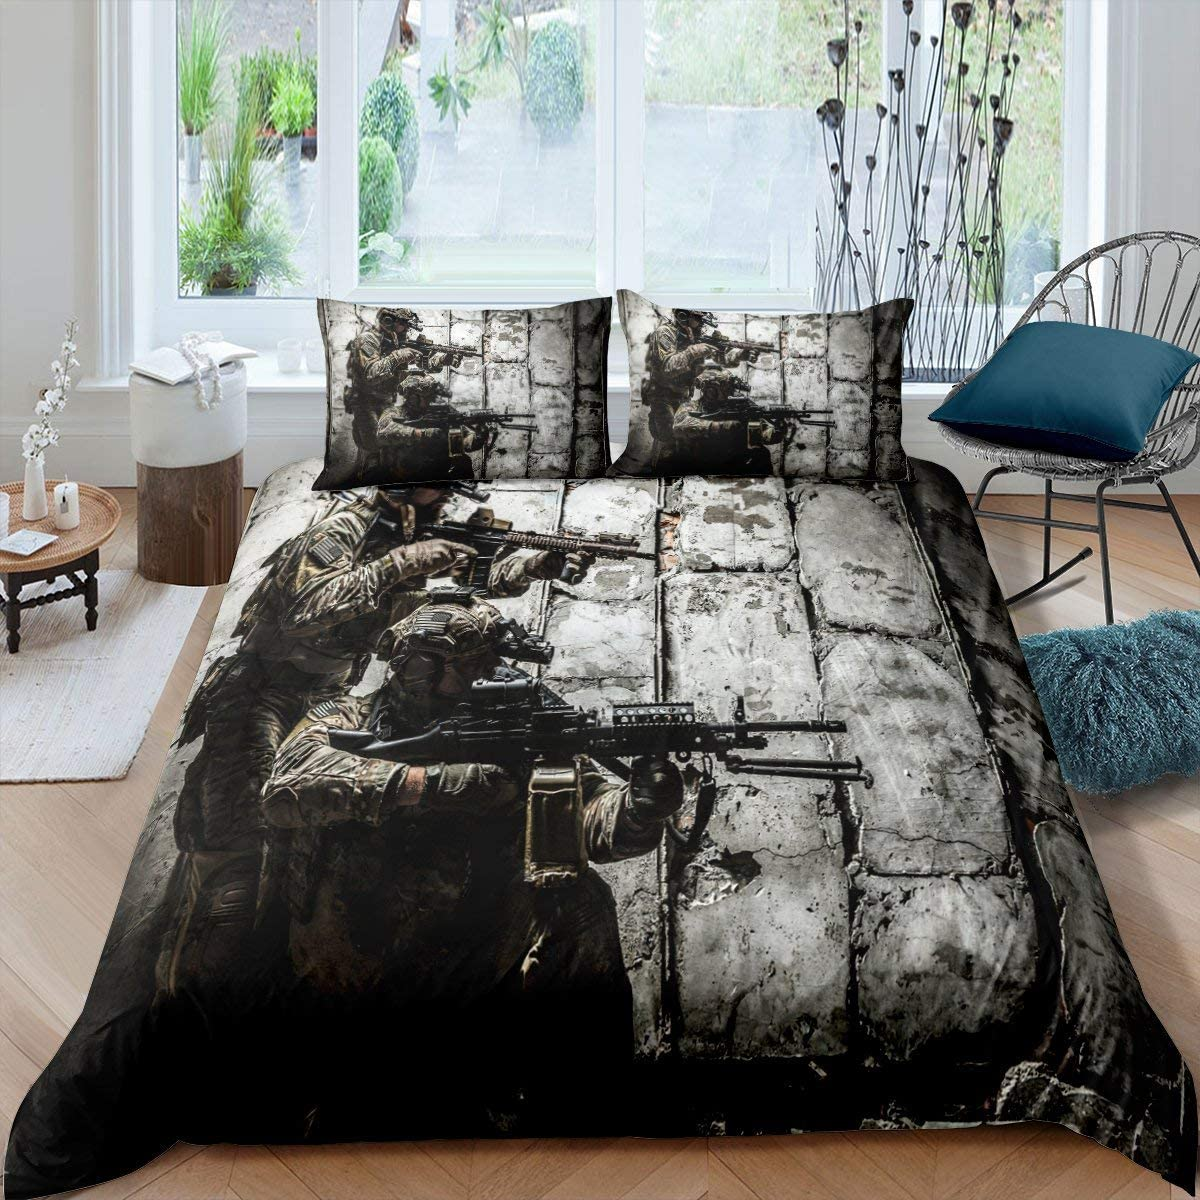 Soldier with Sale item Weapon Comforter Cover Du Mission Boys Under Many popular brands Teens